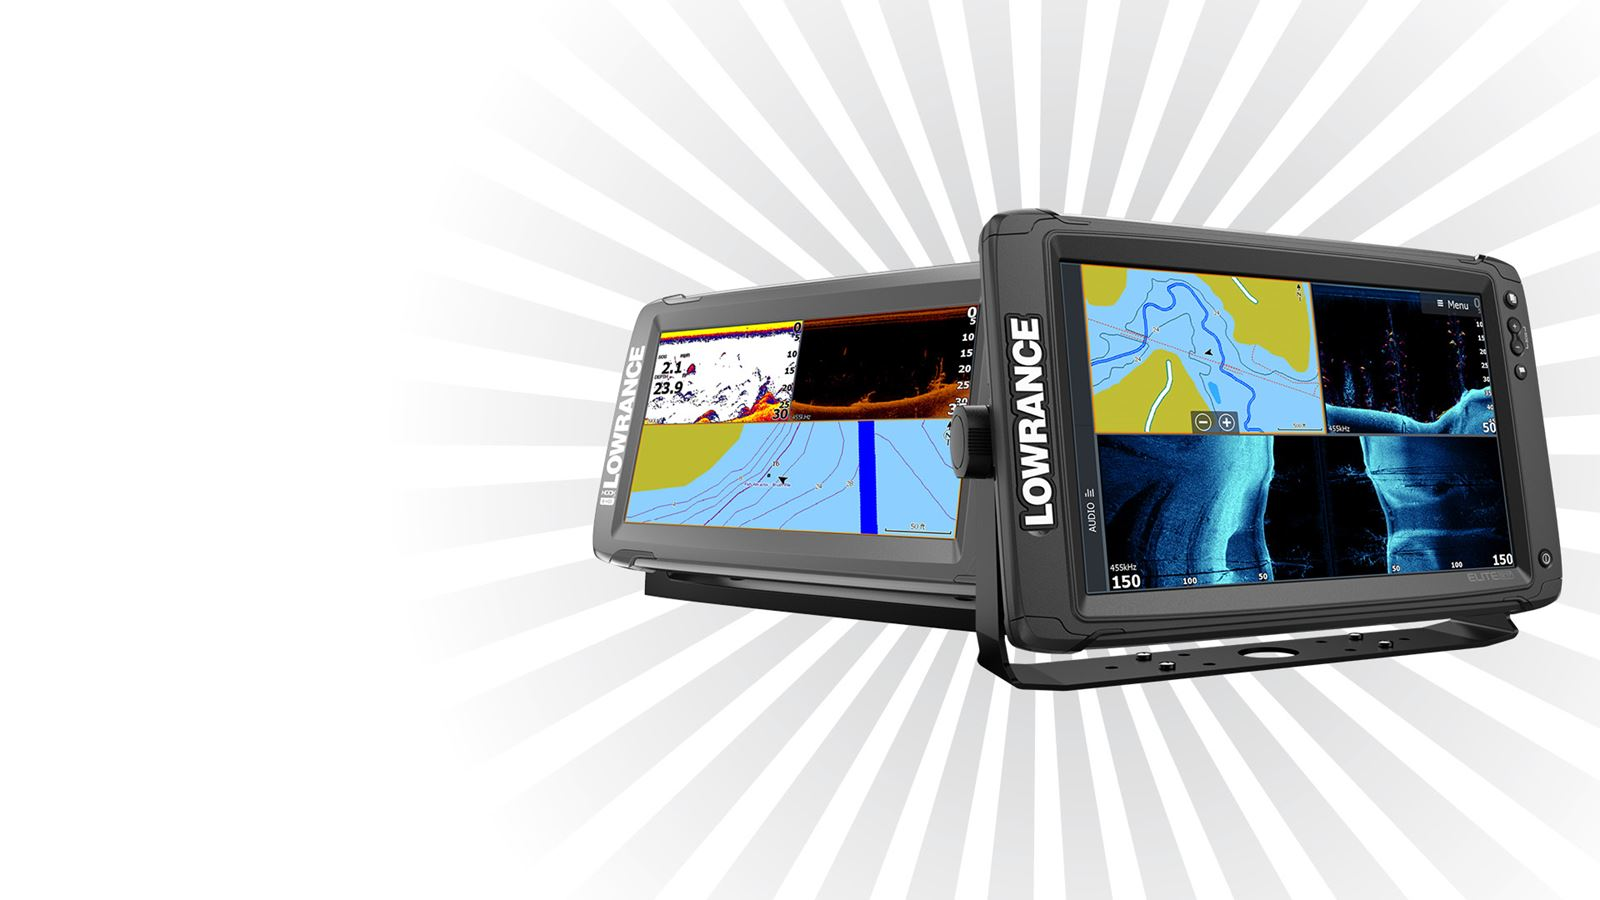 NAV0830 Lowrance Q3 campaign homepage banner 08-19-3.jpg